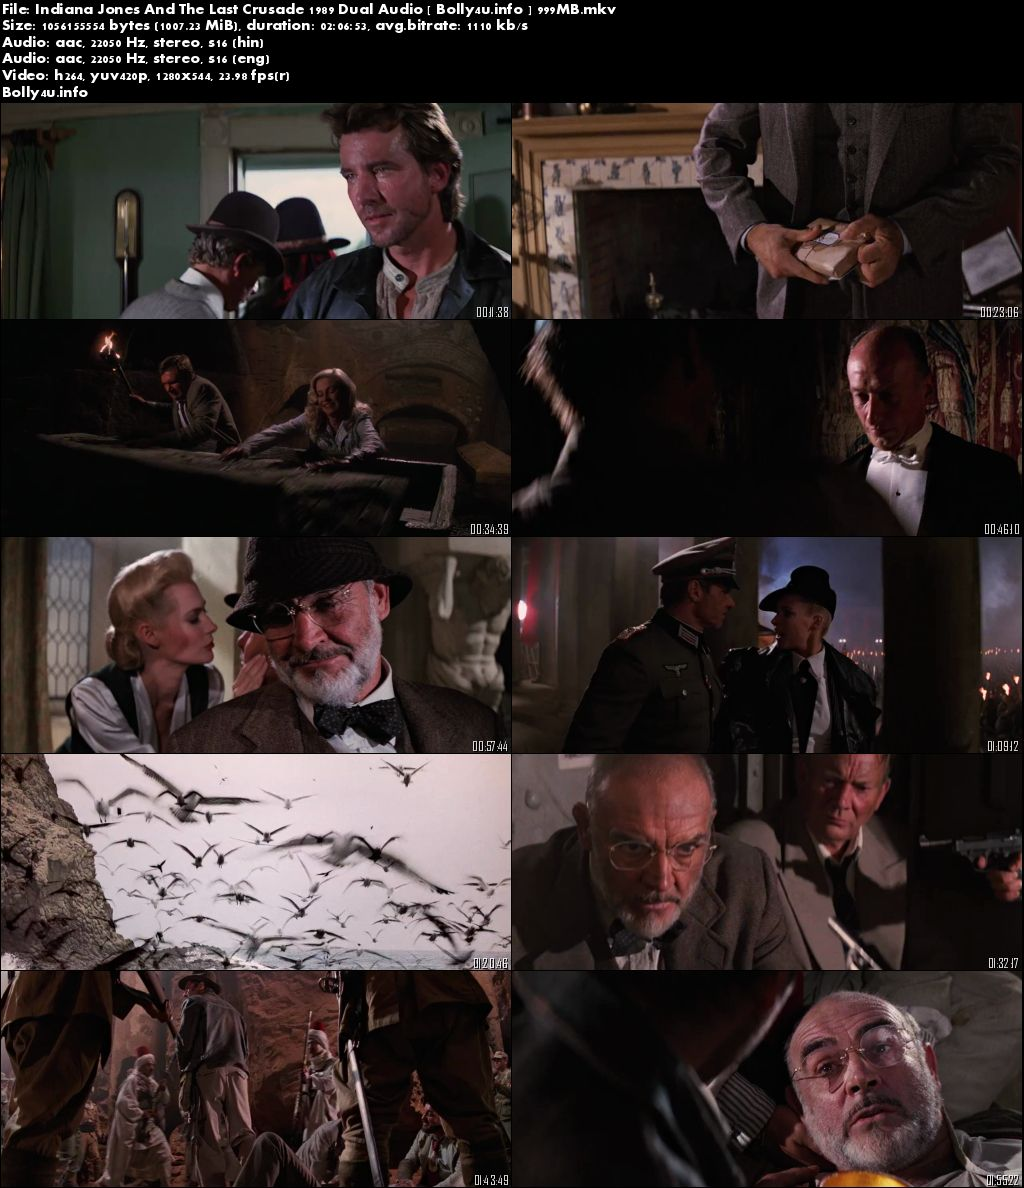 Indiana Jones And The Last Crusade 1989 BRRip 400Mb Dual Audio 480p Download